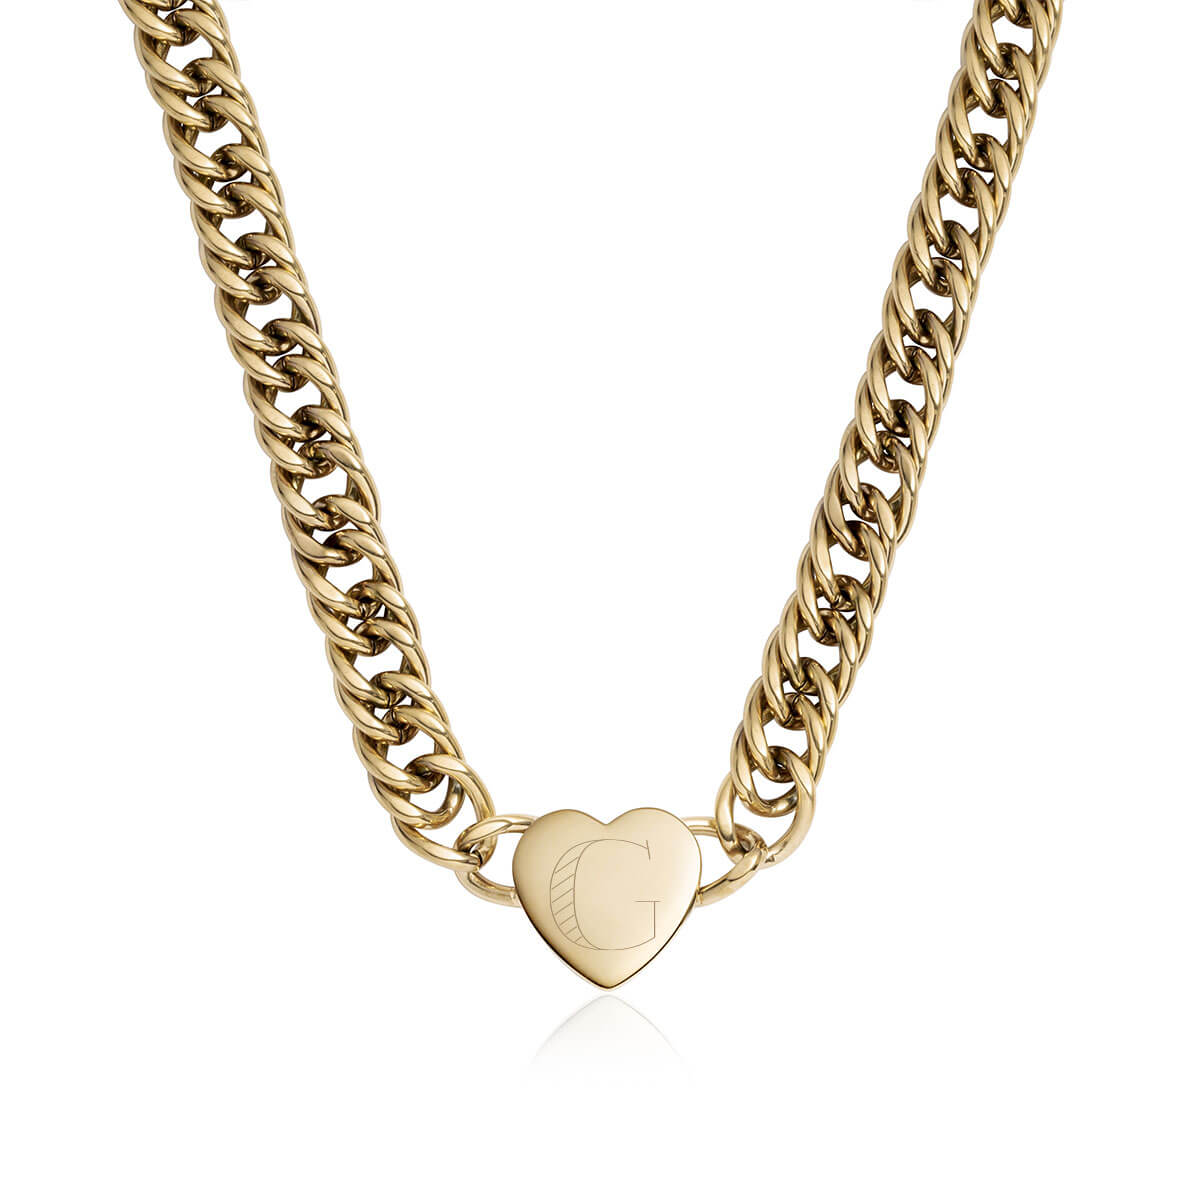 Heart Curb Chain Personalise Necklace (Champagne)